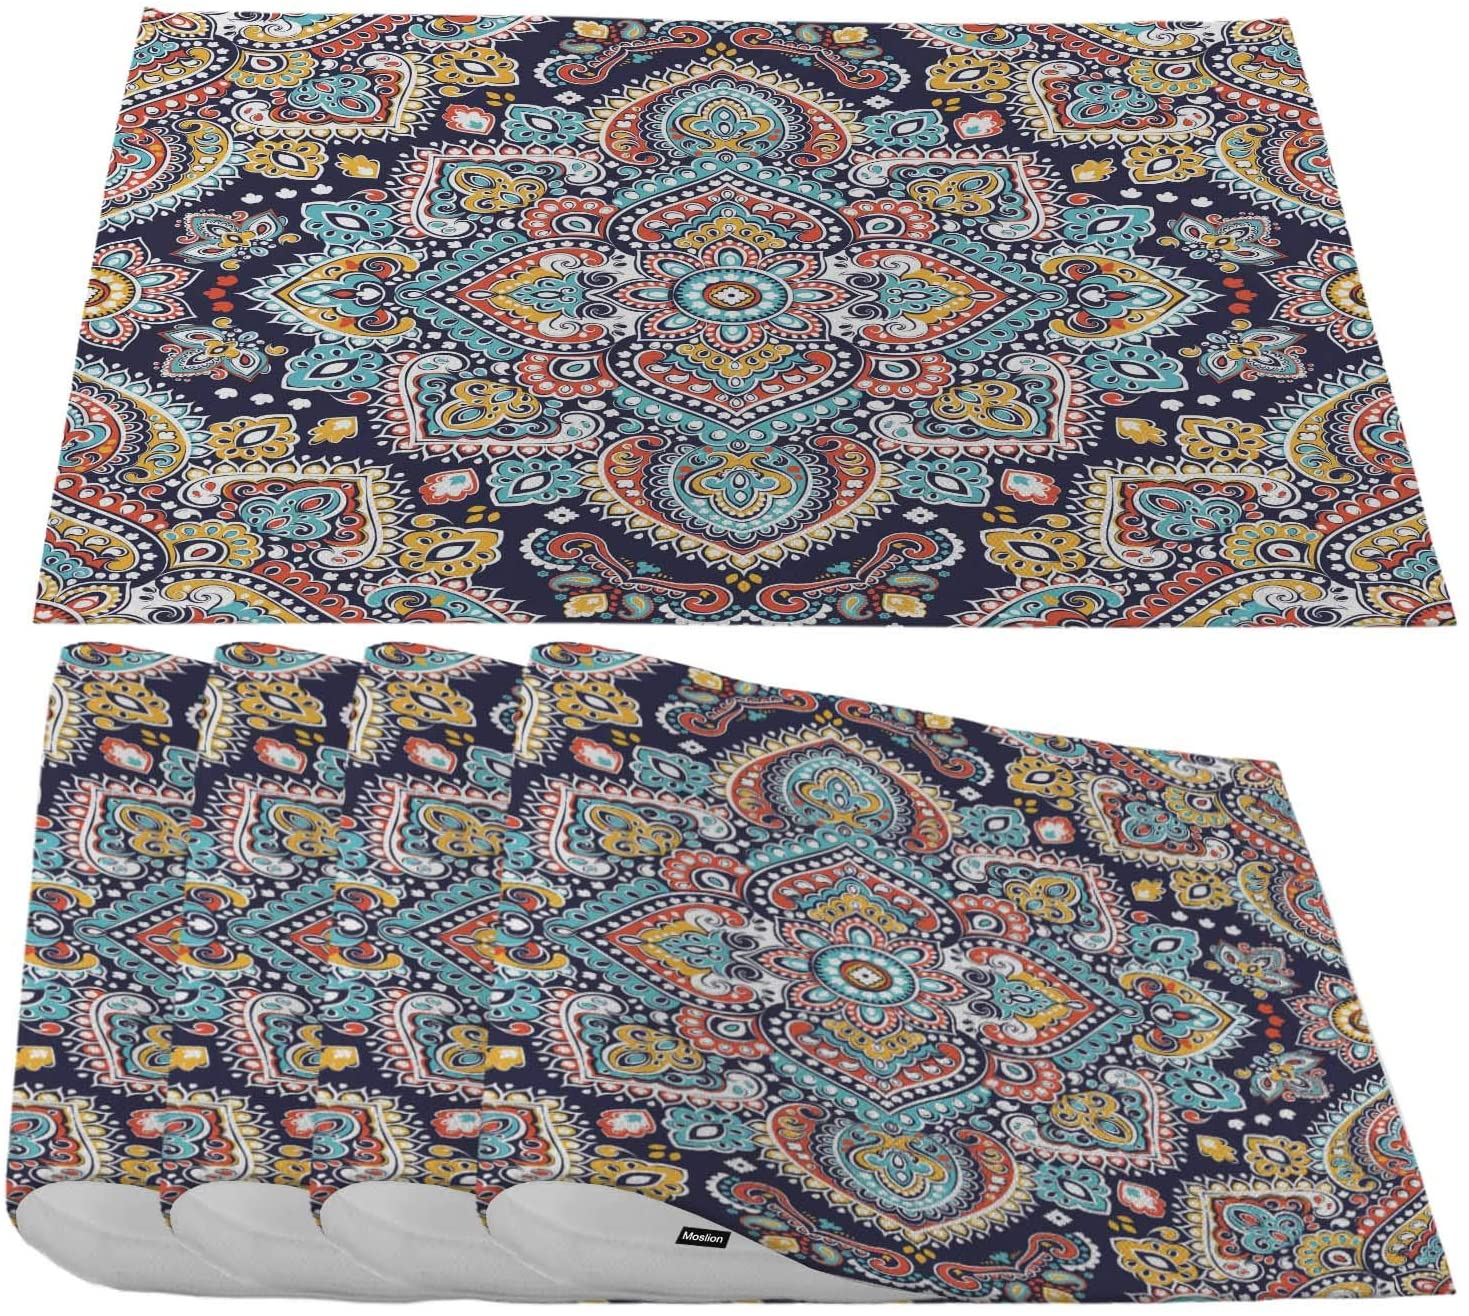 Moslion Paisley Medallion Placemats,Indian Floral Ethnic Mandala Ornament Henna Tattoo Style Place Mats for Dining Table/Kitchen Table,Waterproof Non-Slip Washable Outdoor Dinner Table Mats,Set of 4